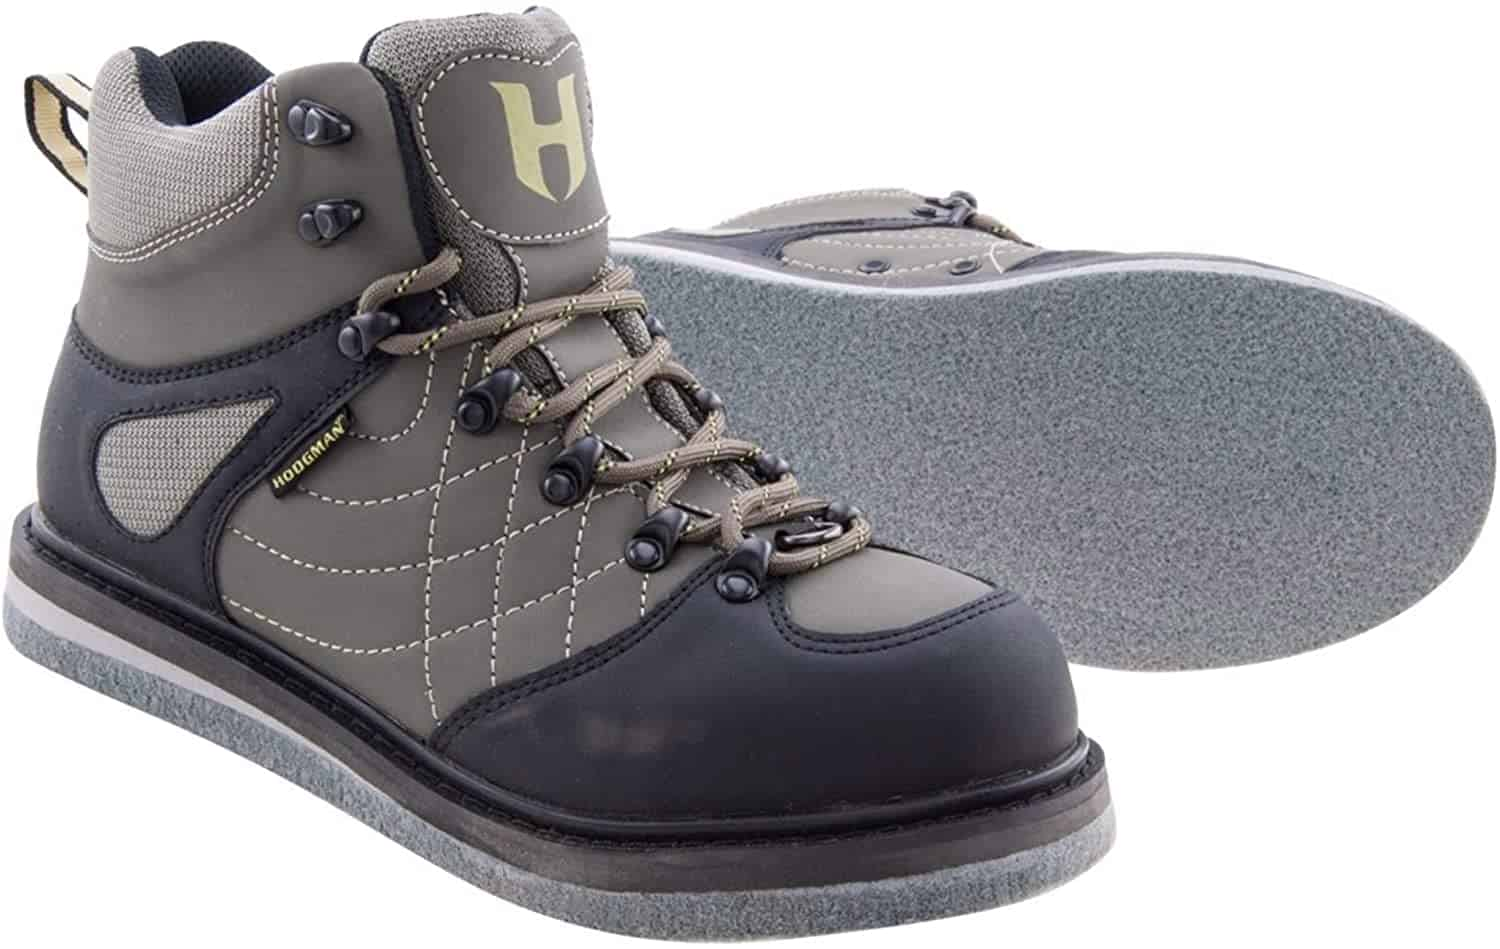 H3 Felt Wading Boots by Hodgman